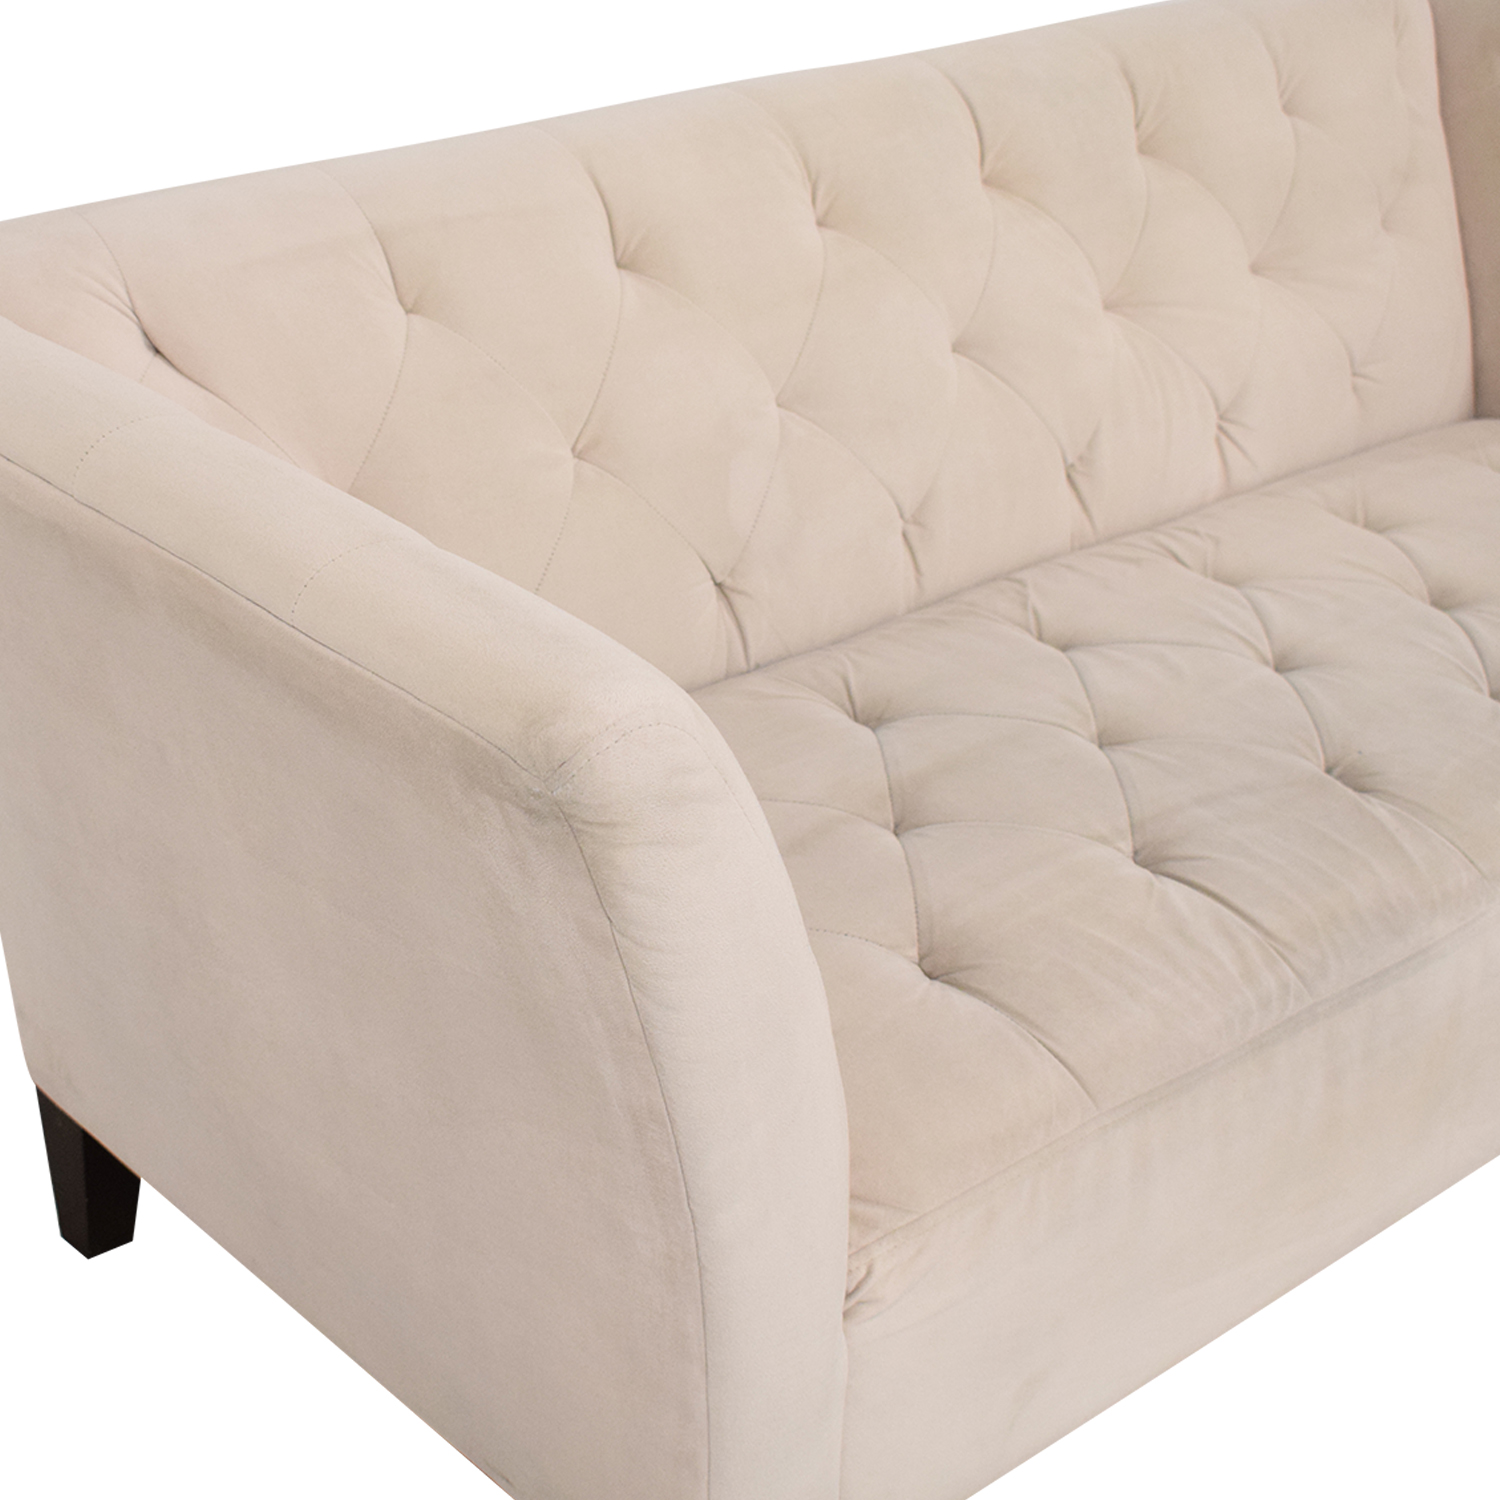 buy Macy's Lisette Tufted Sofa Macy's